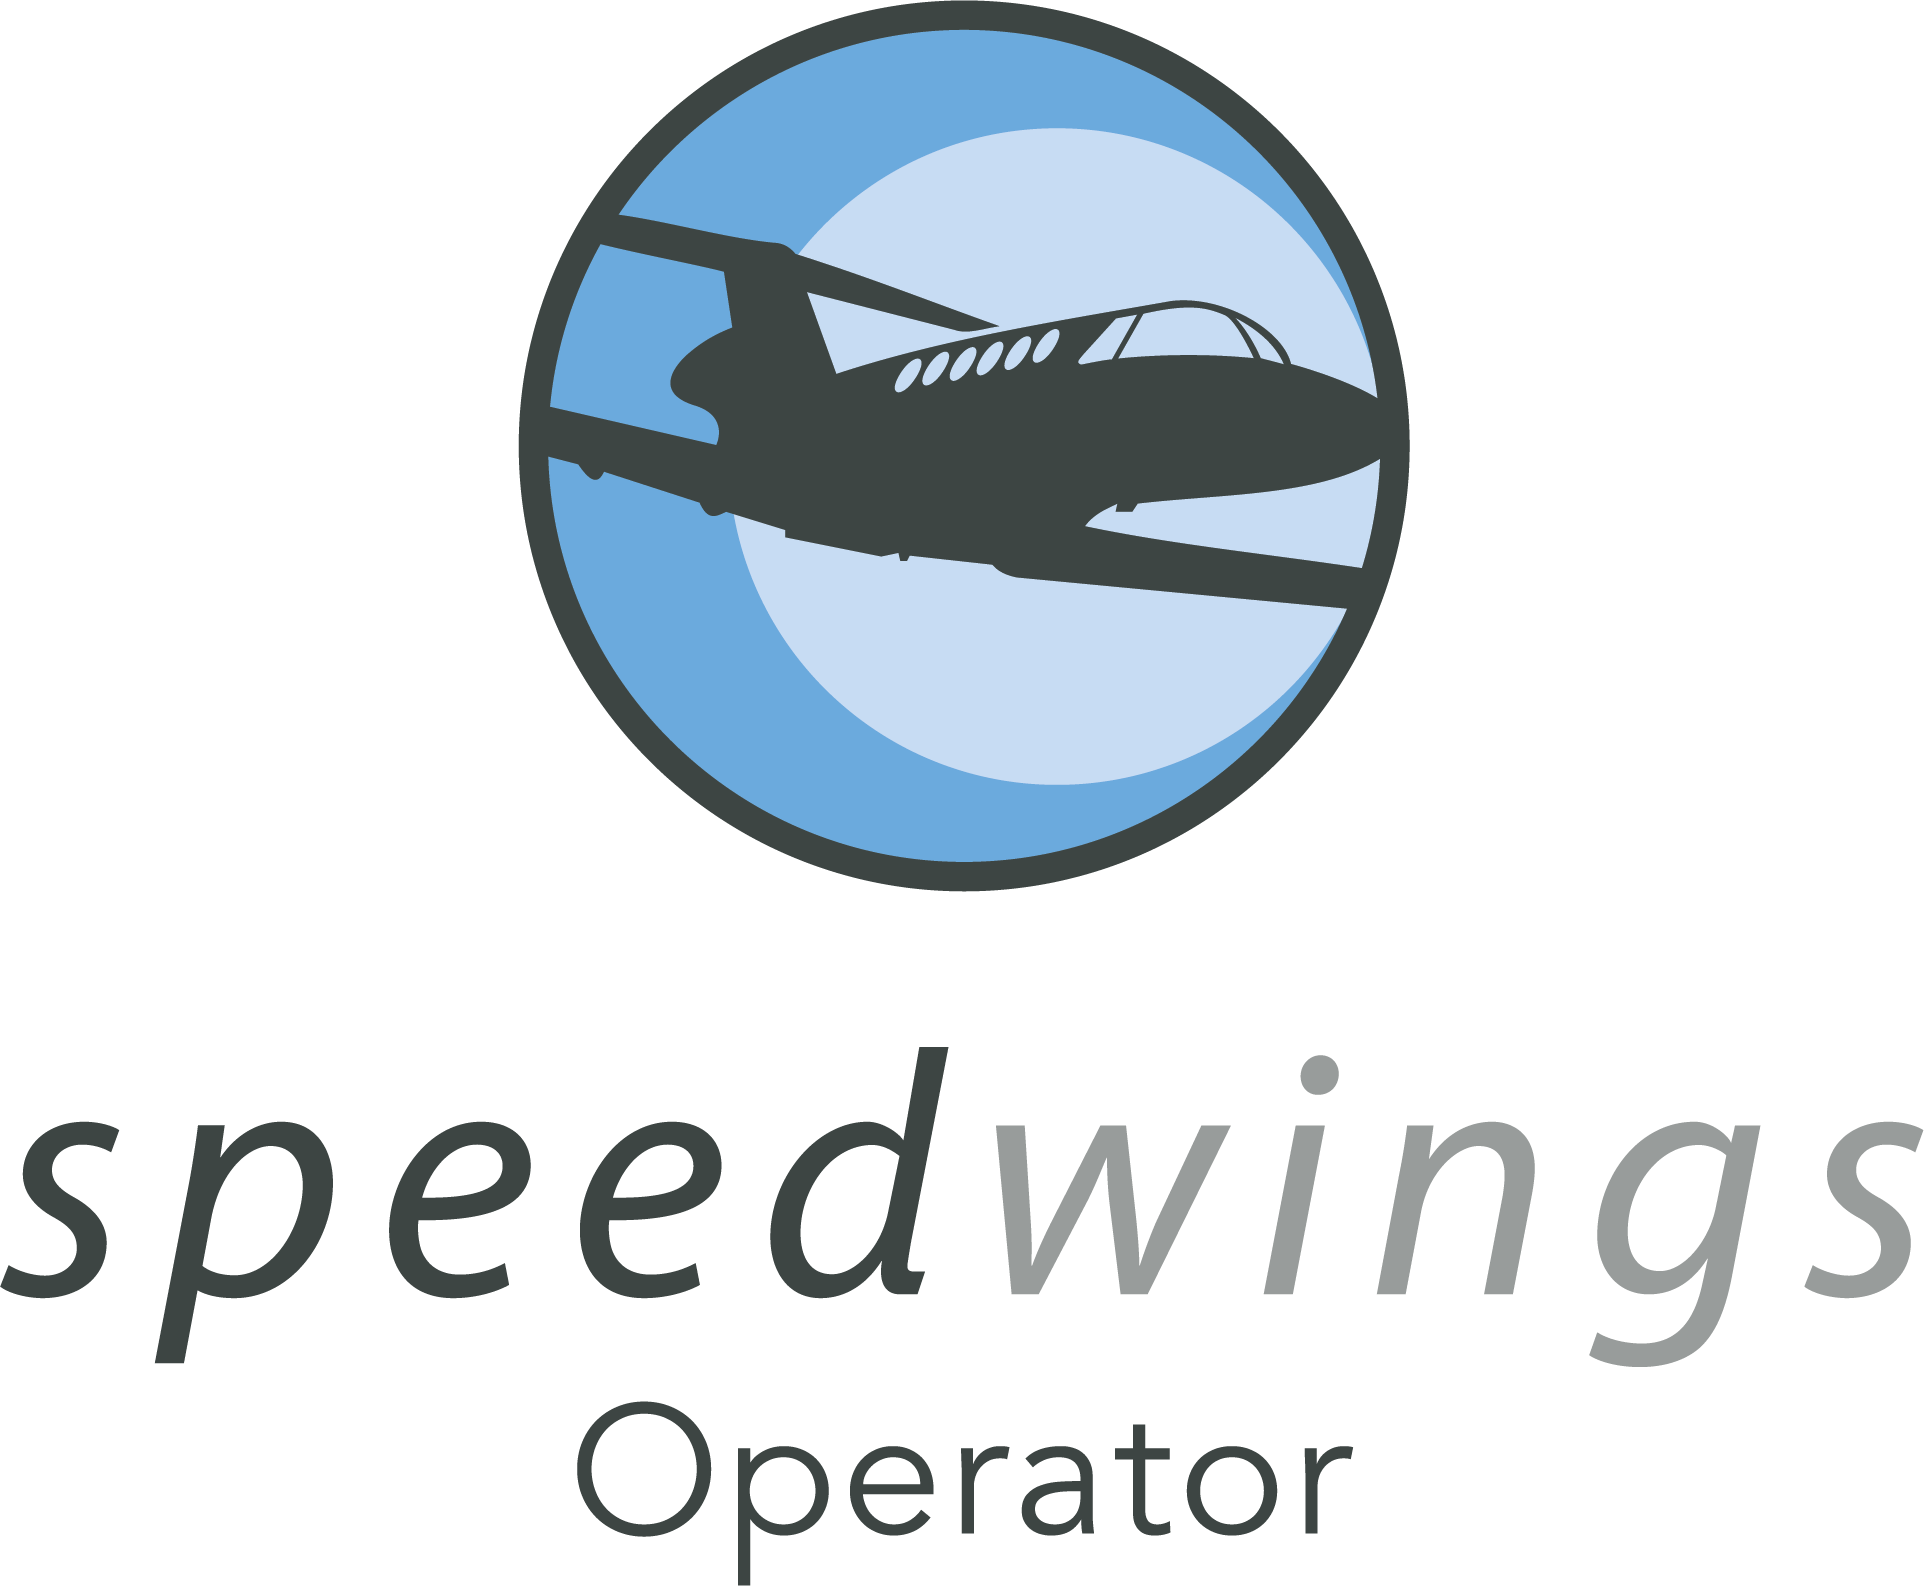 190320_speedwings_operator_logo_FINAL